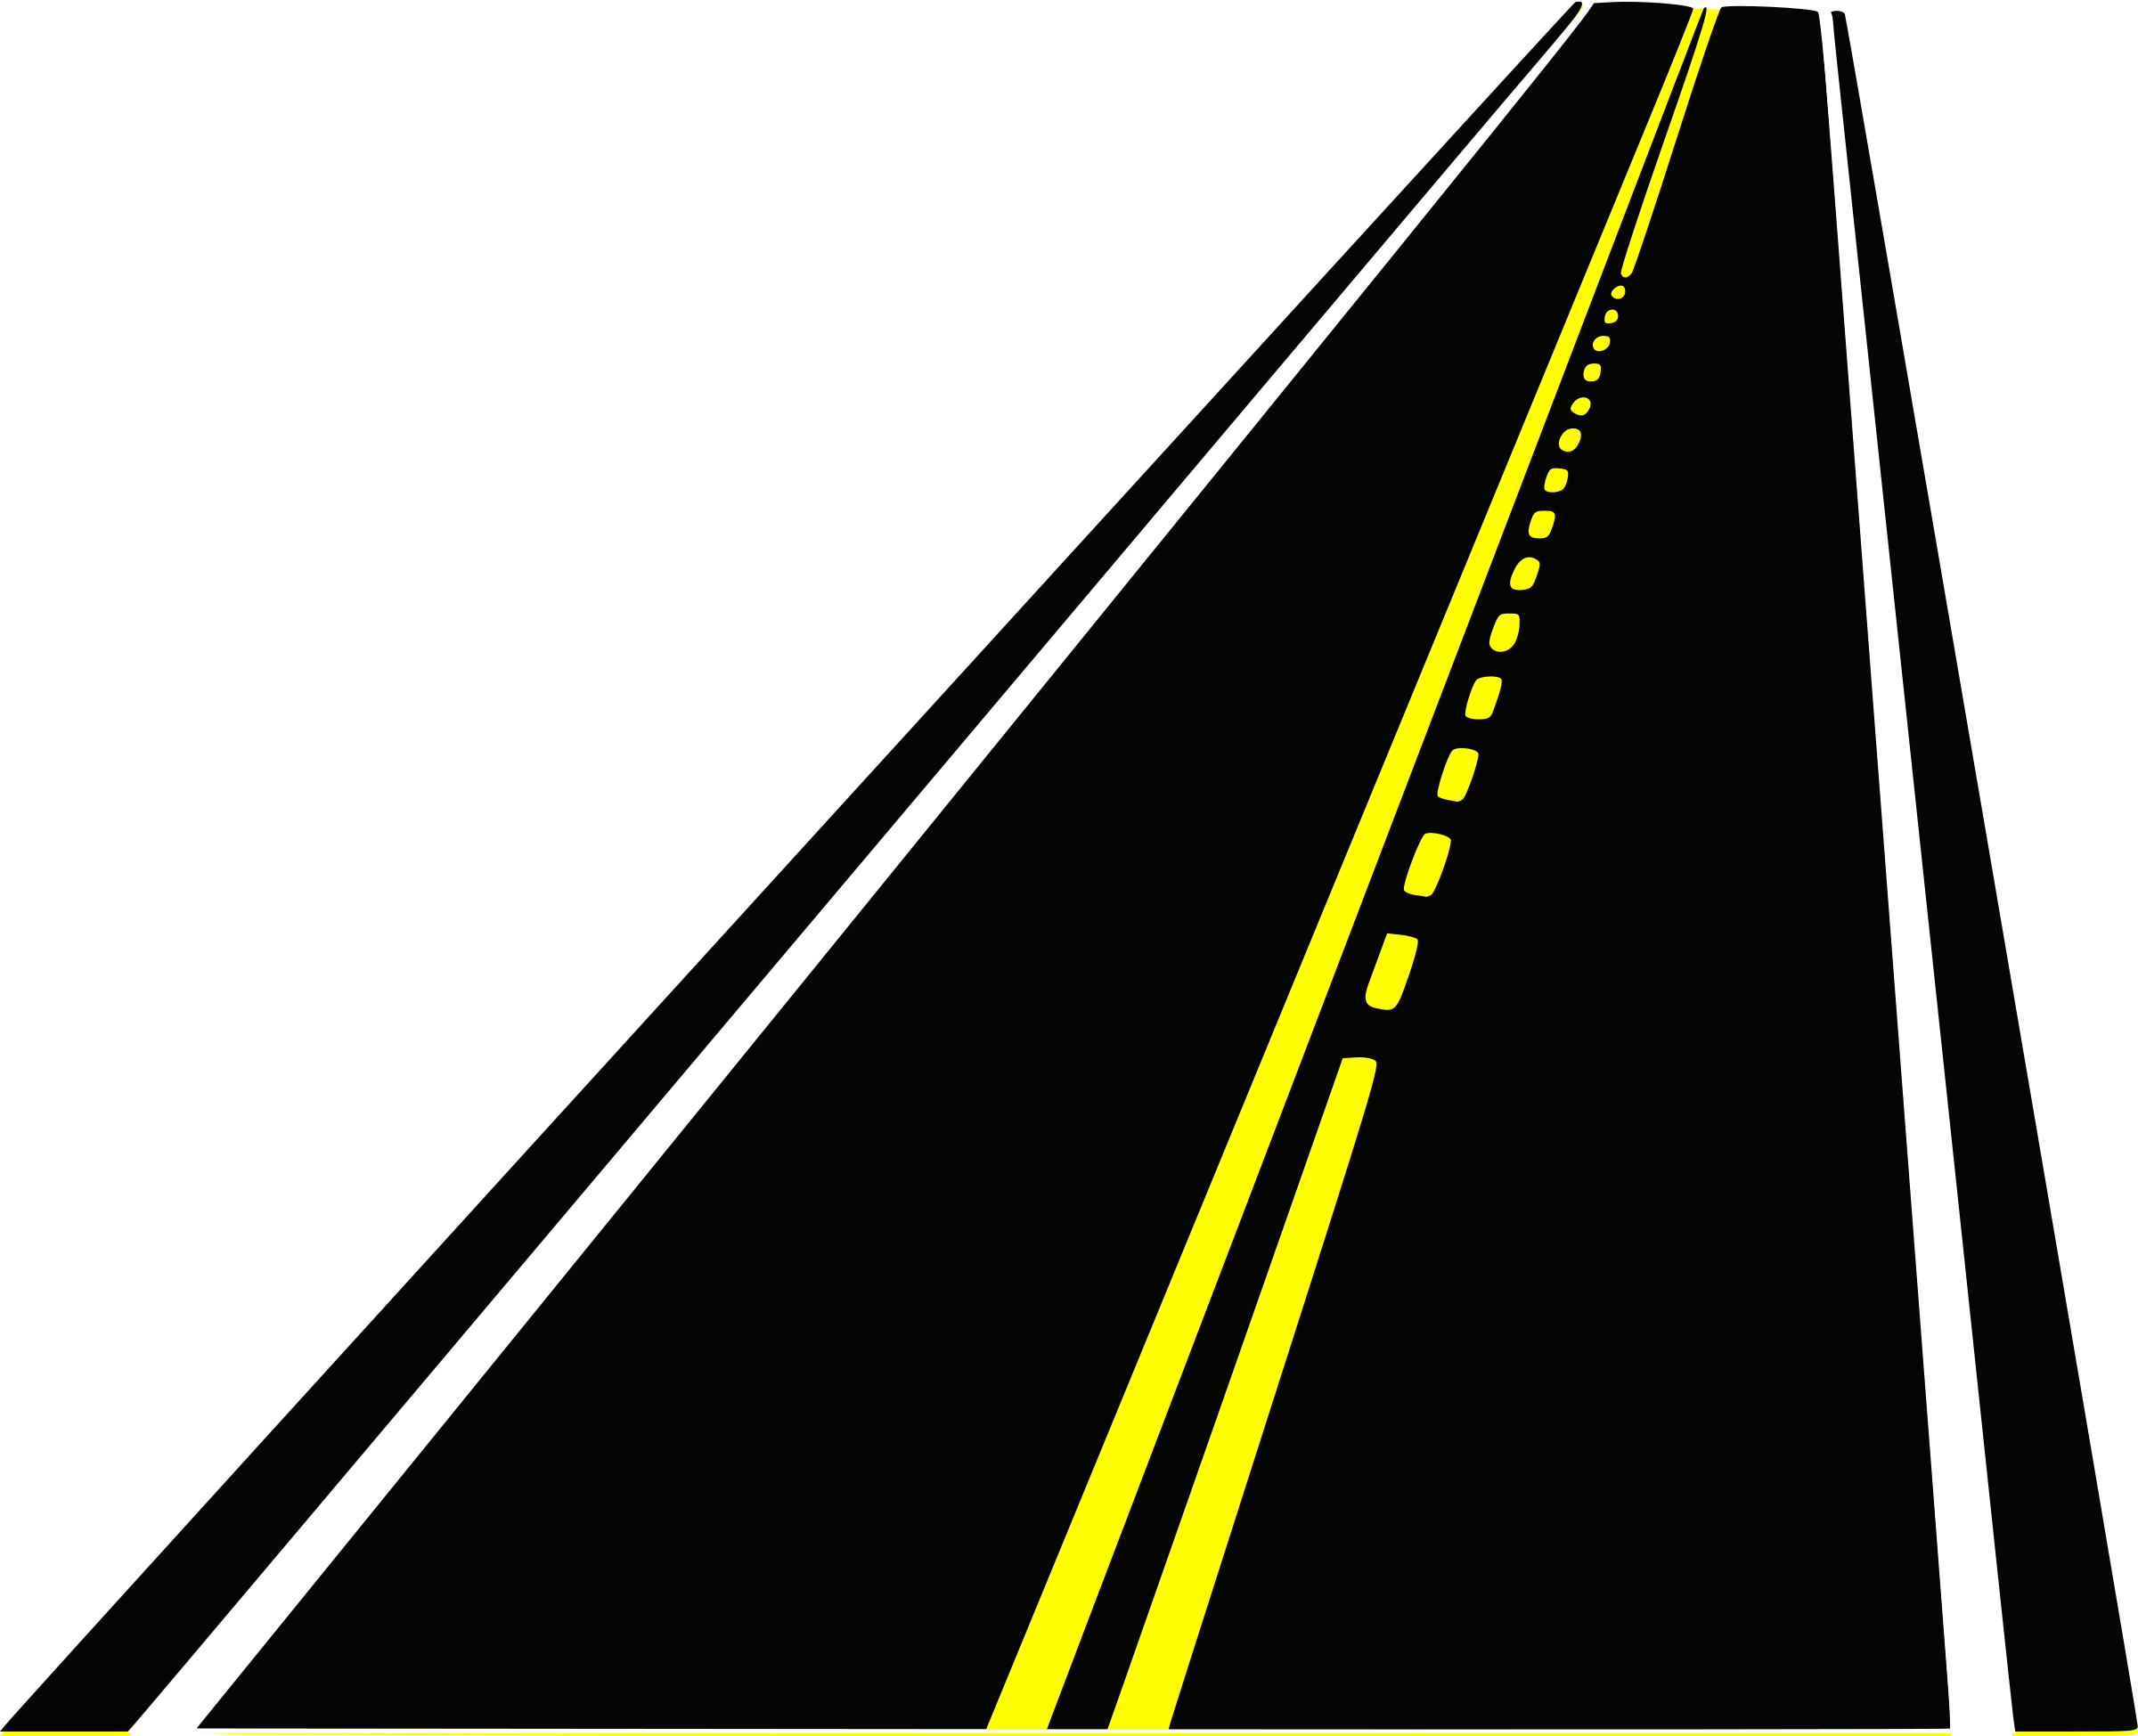 Free clipart highway. Roadway cliparts download clip